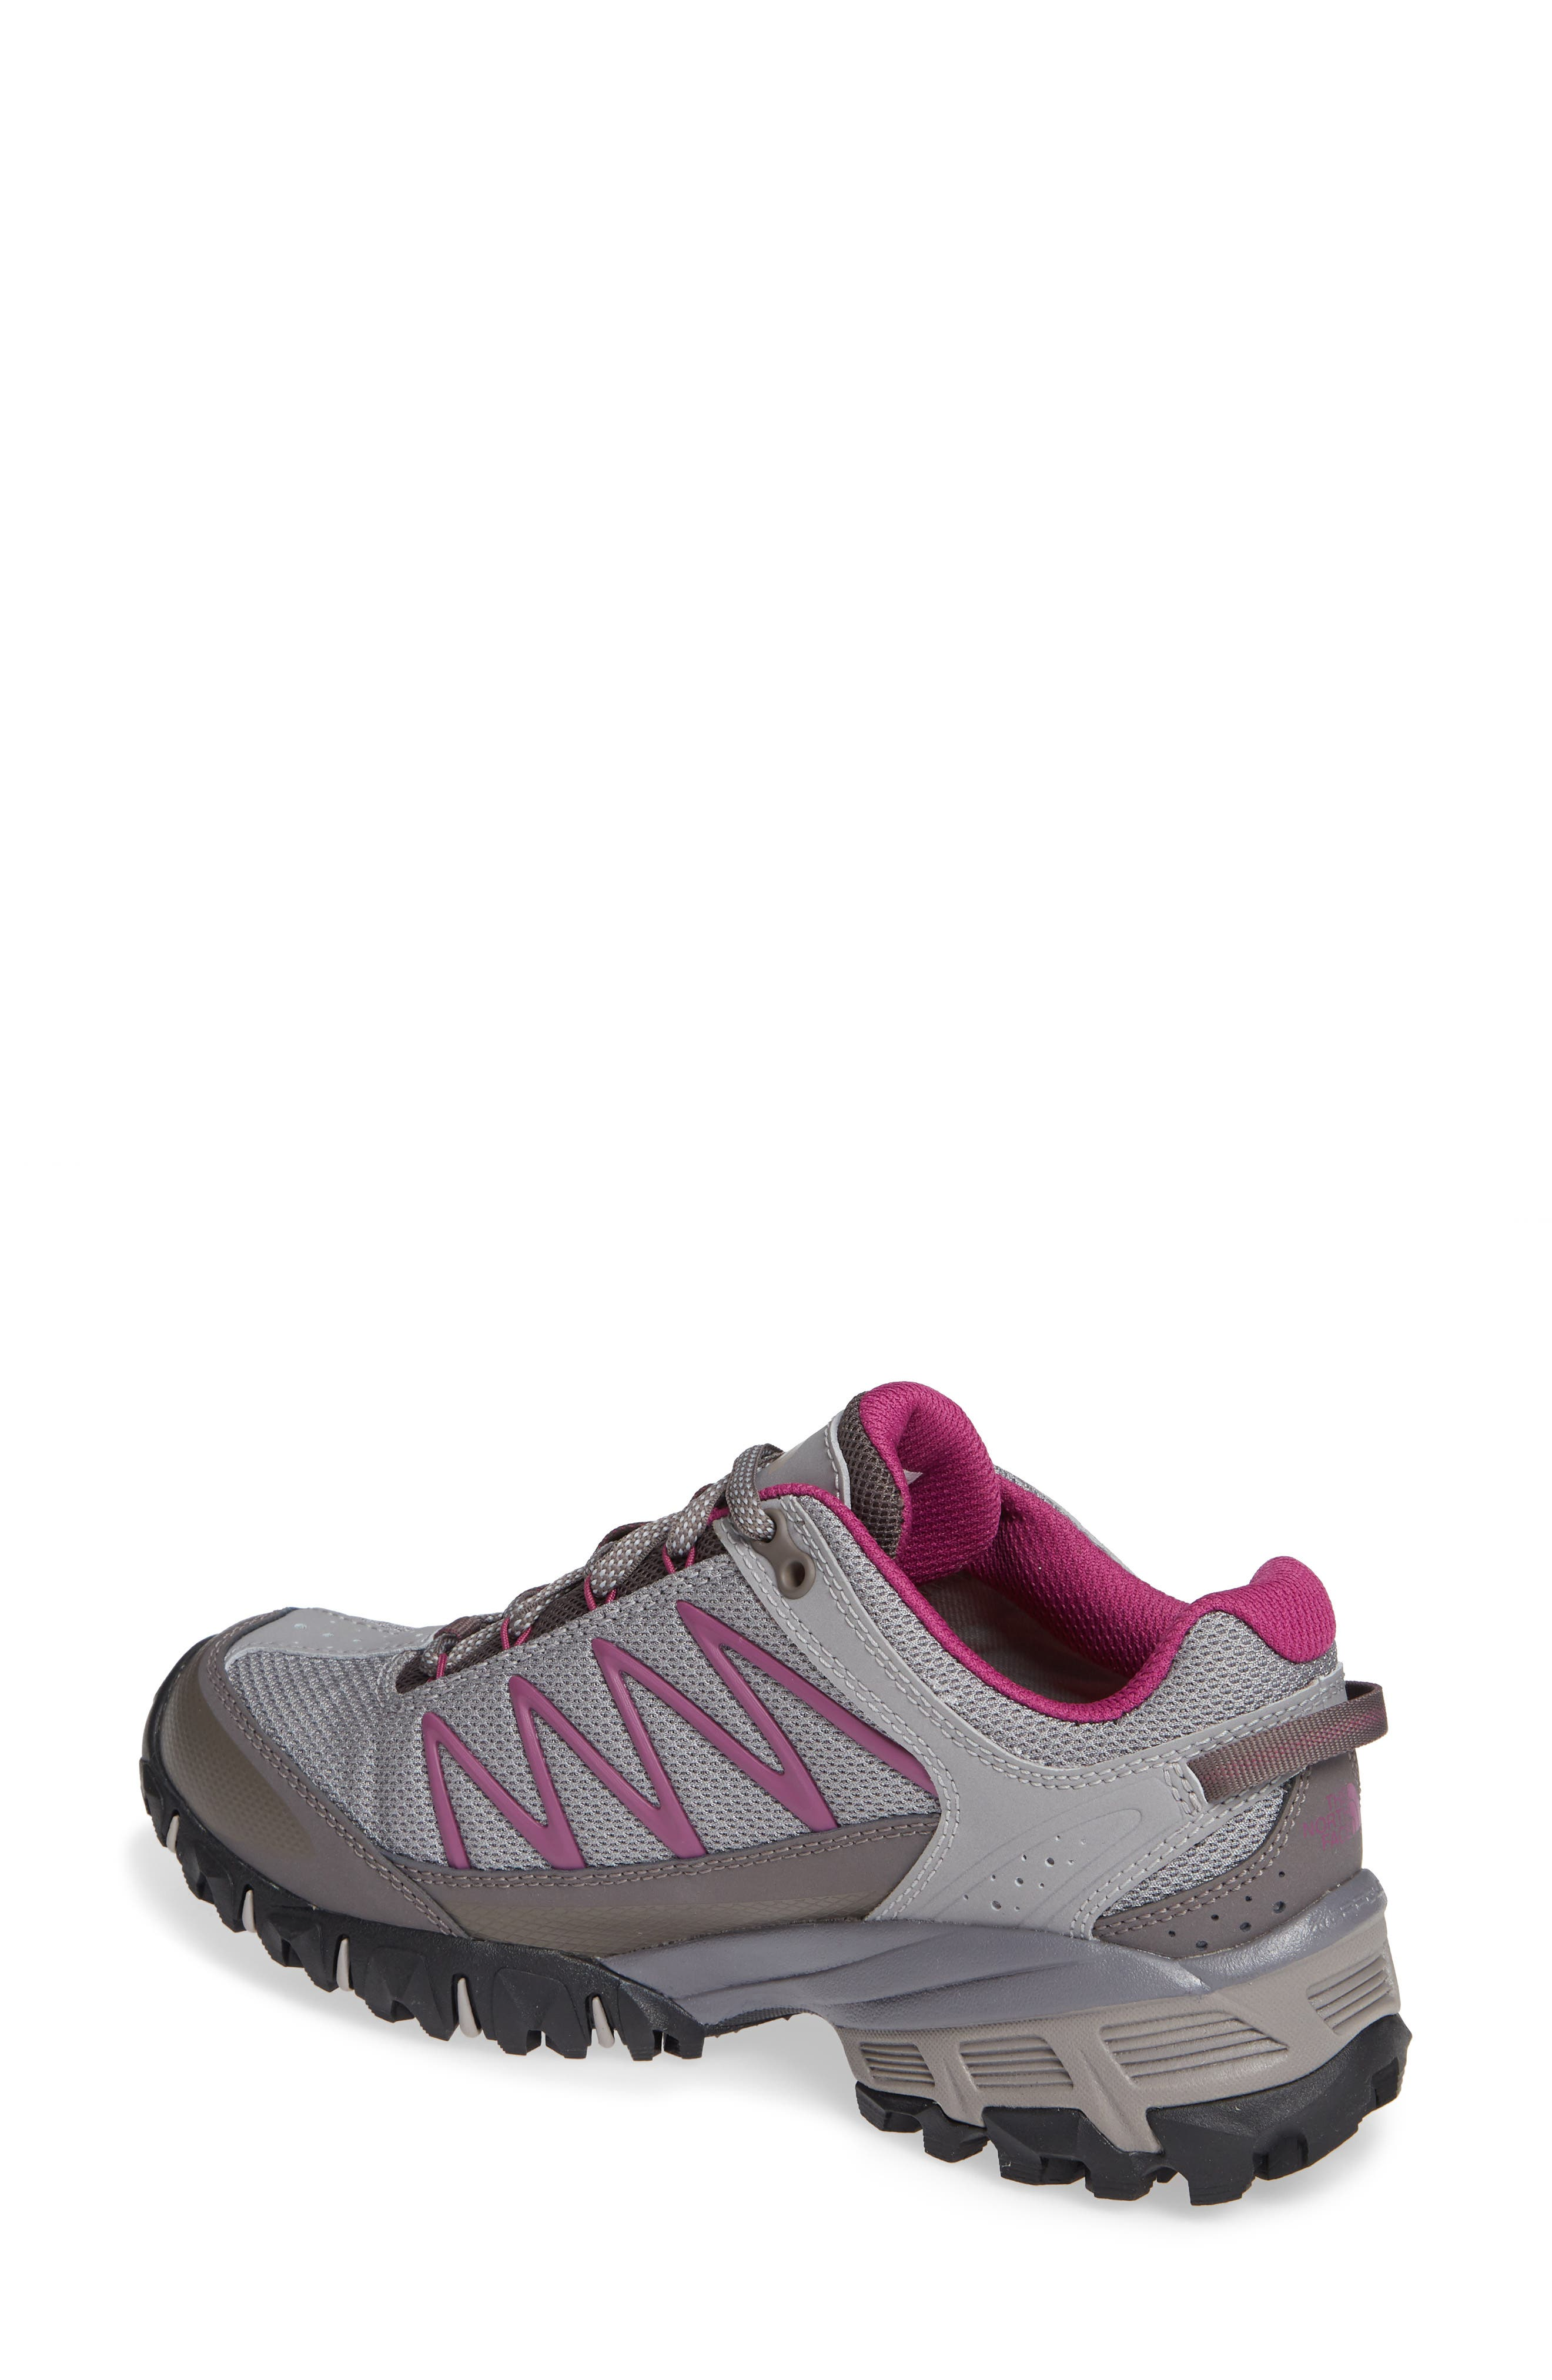 Ultra 110 GTX<sup>®</sup> Hiking Shoe,                             Alternate thumbnail 2, color,                             Q-SILVER GREY/ ASTER PURPLE